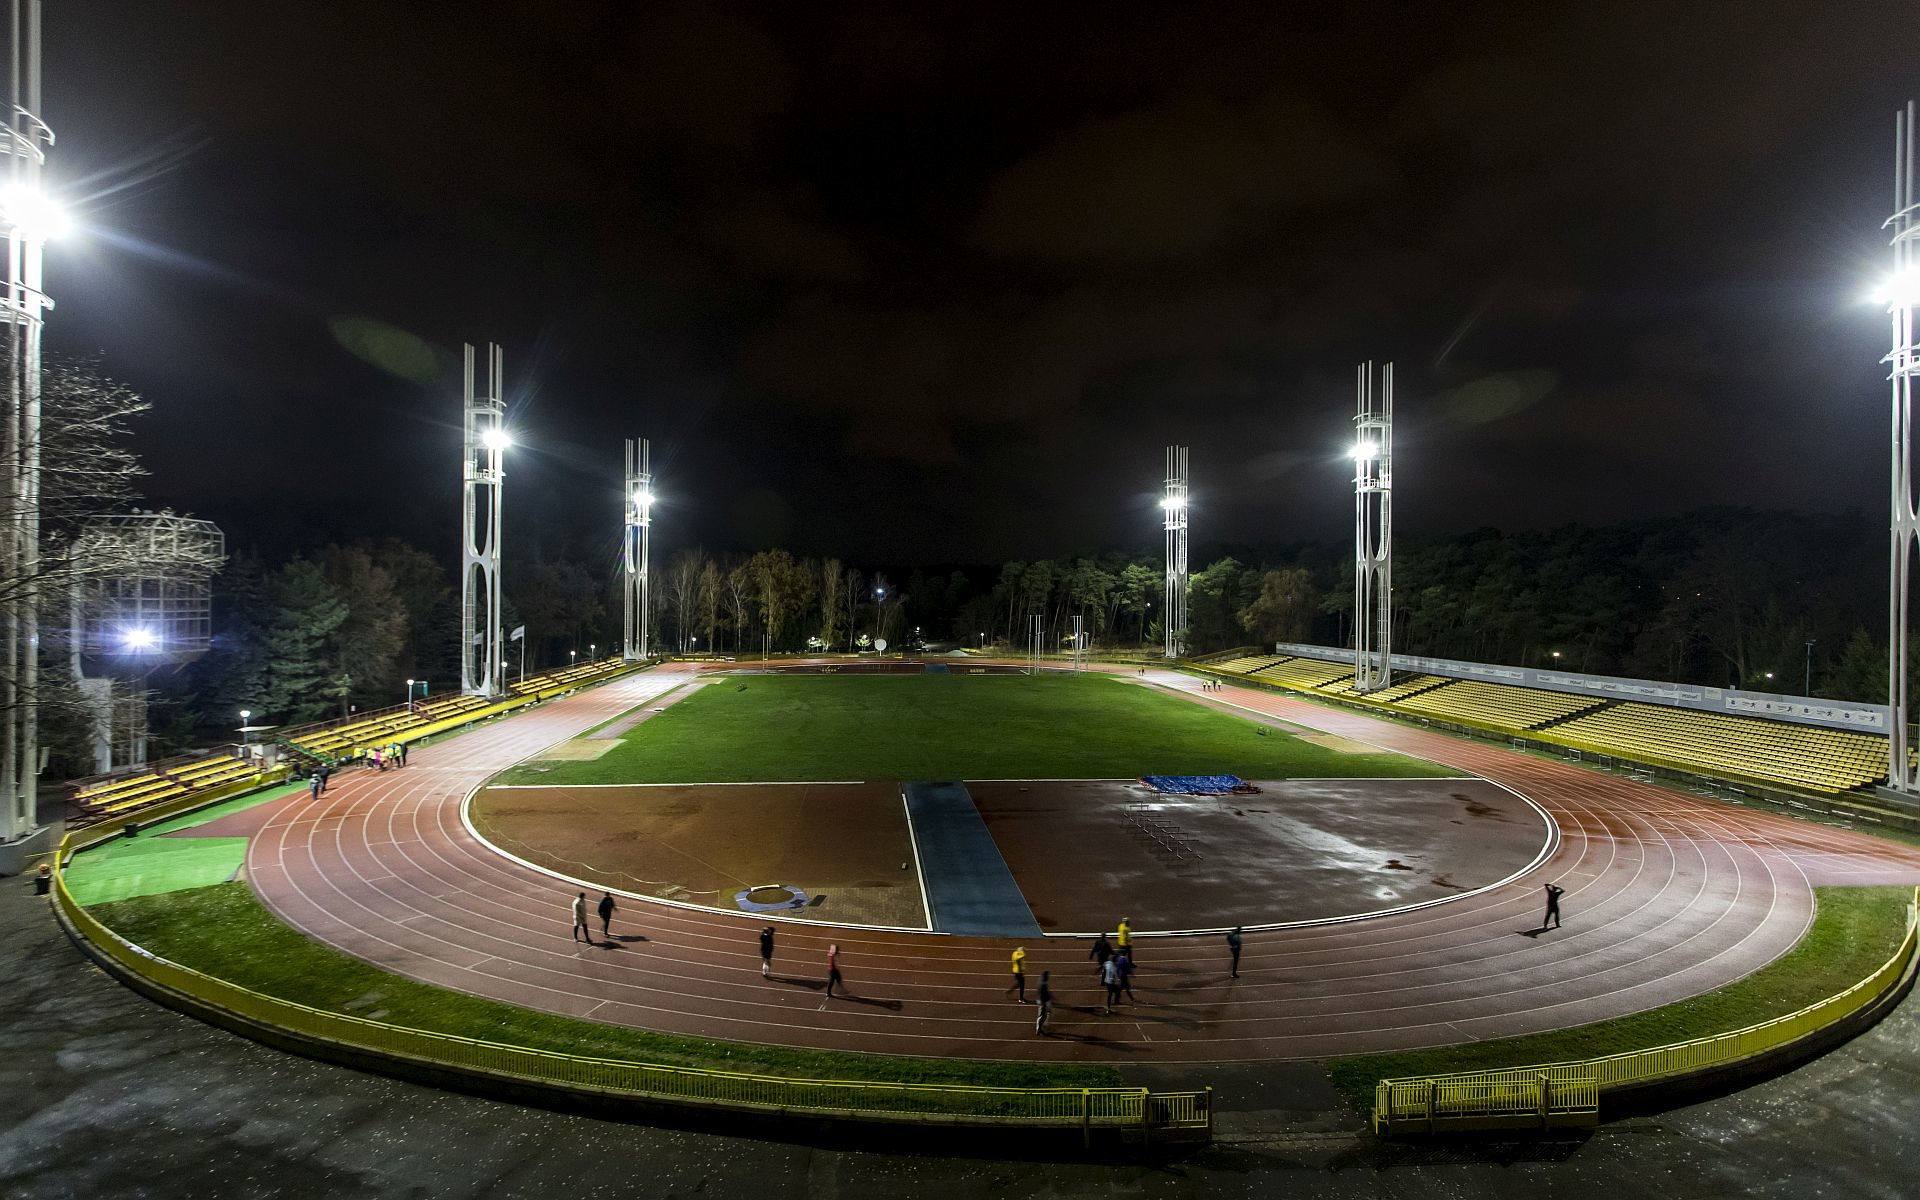 Stadion nocą (fot. Adam Ciereszko)